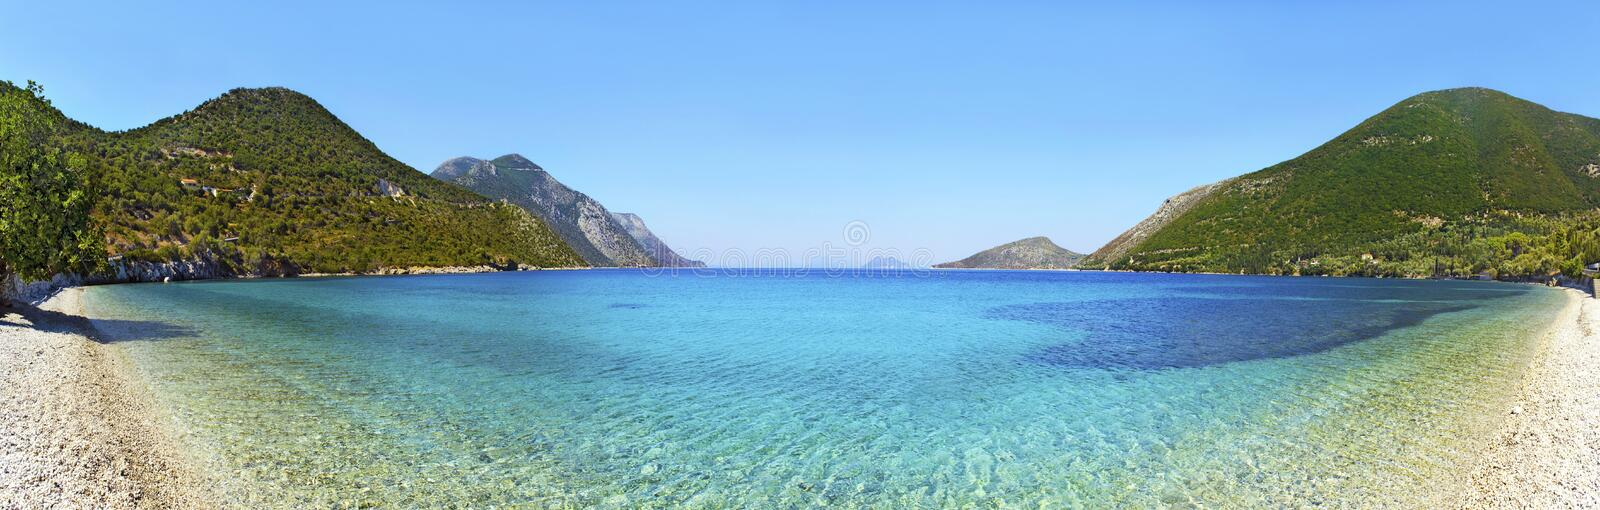 Panoramic photo of a beach in Ithaca. Greece stock image